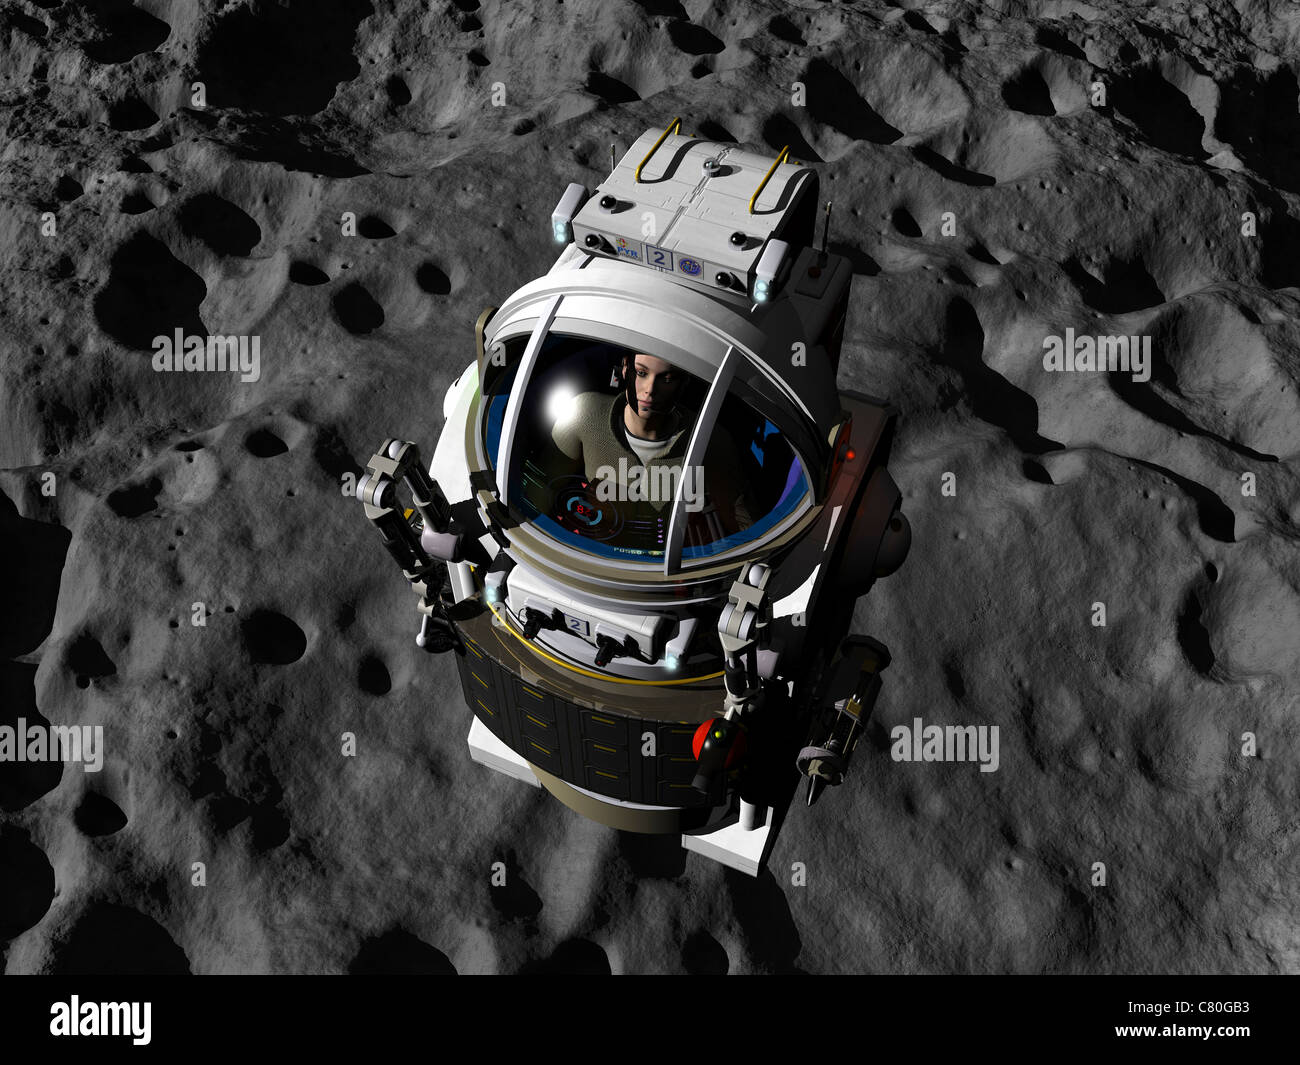 An astronaut piloting a Manned Maneuvering Vehicle above the surface of an asteroid. - Stock Image